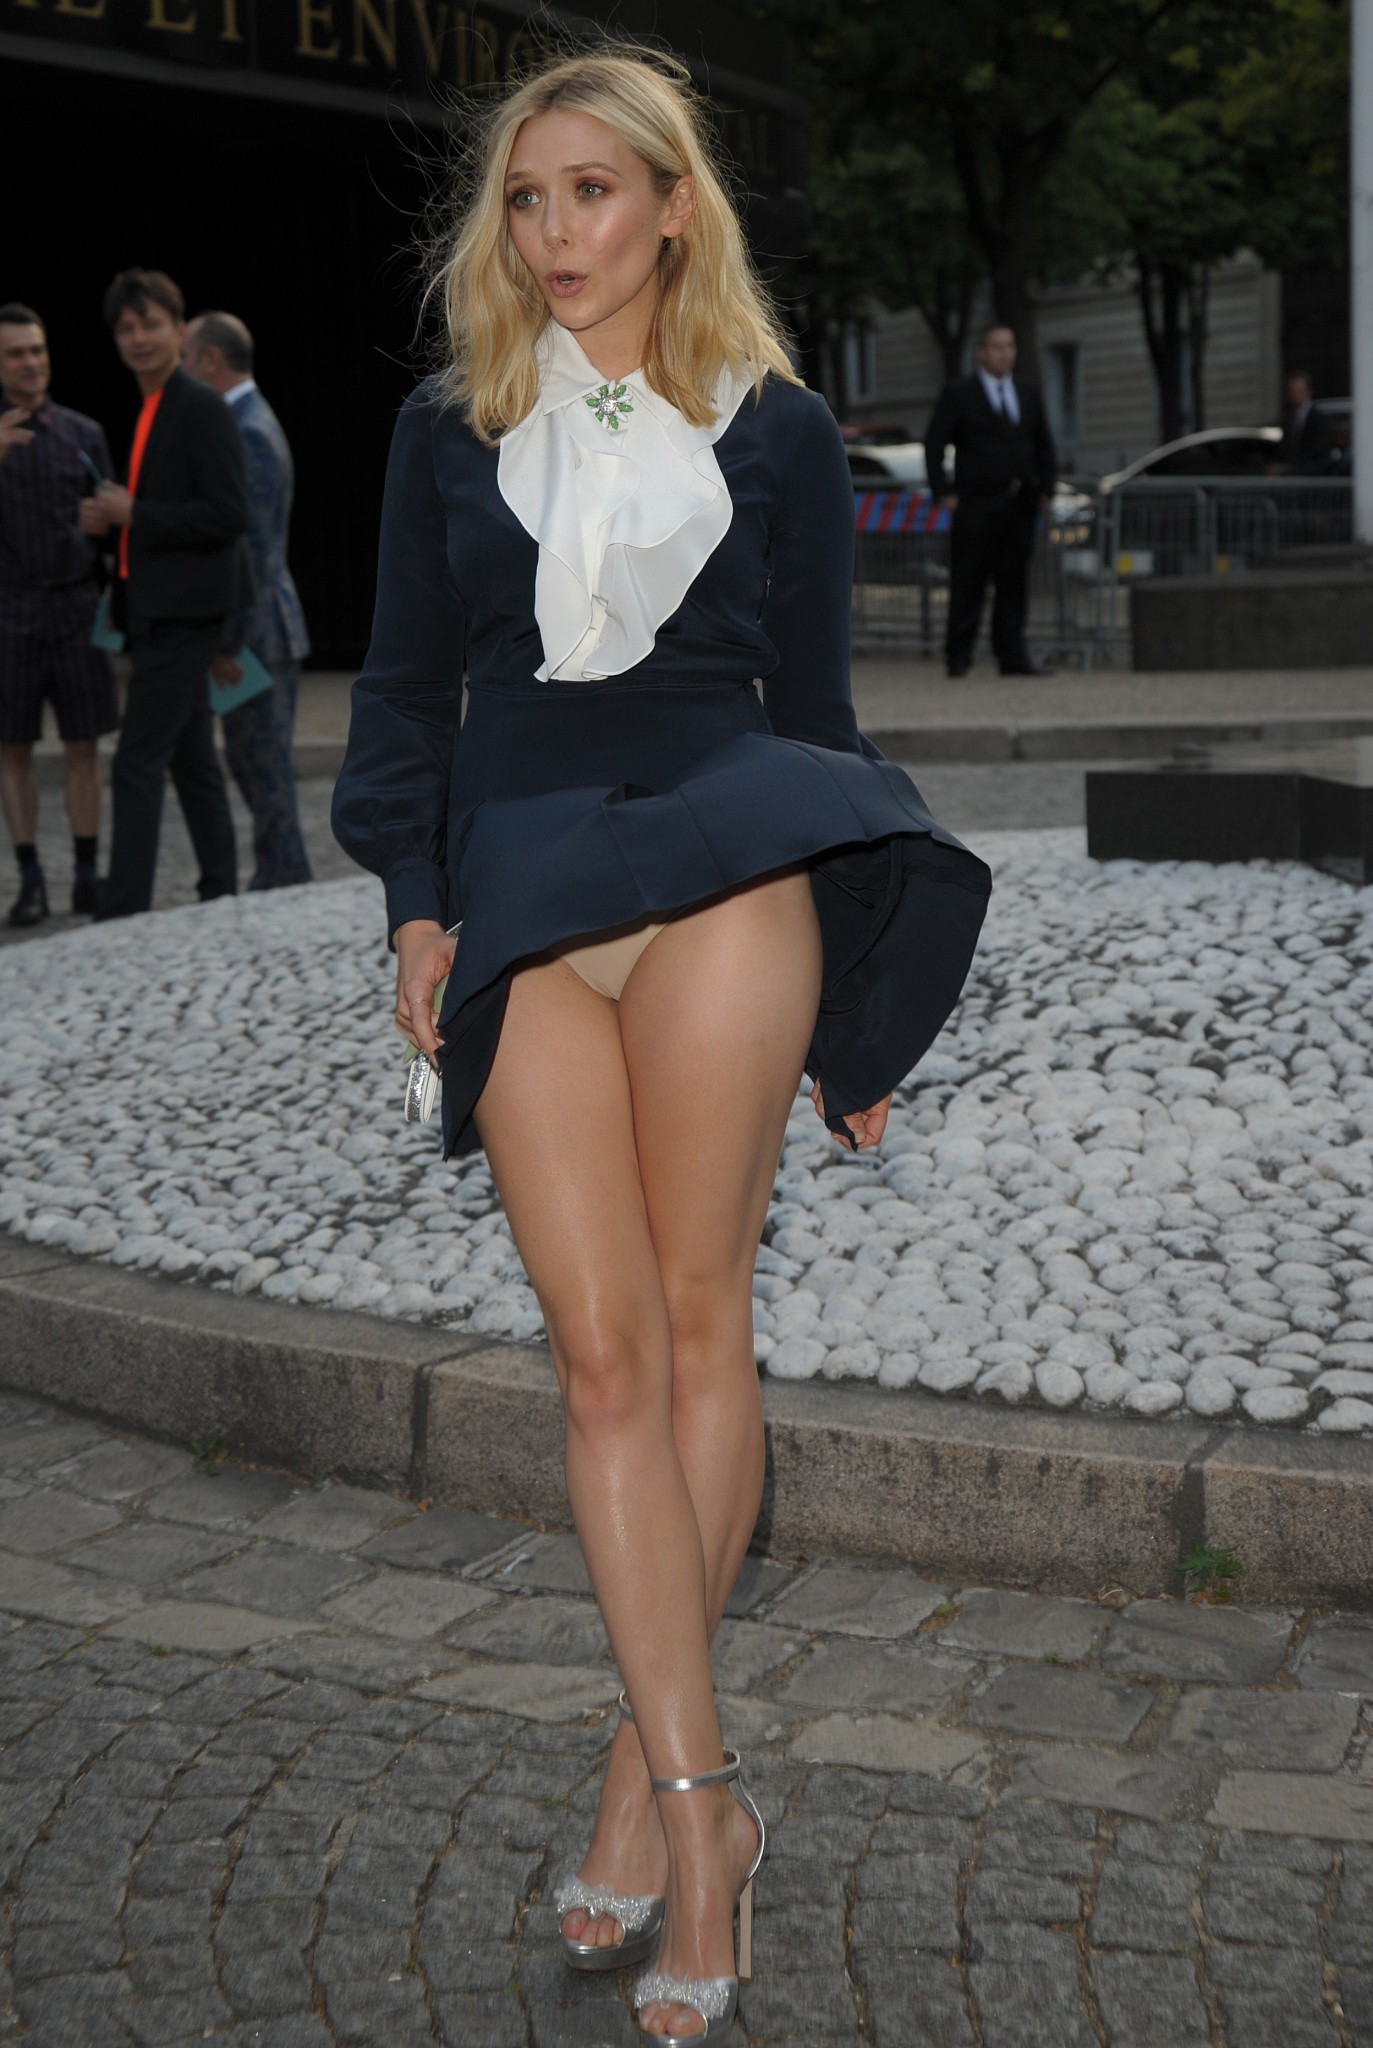 elizabeth olsen wind blown upskirt at miu miu fragrance and